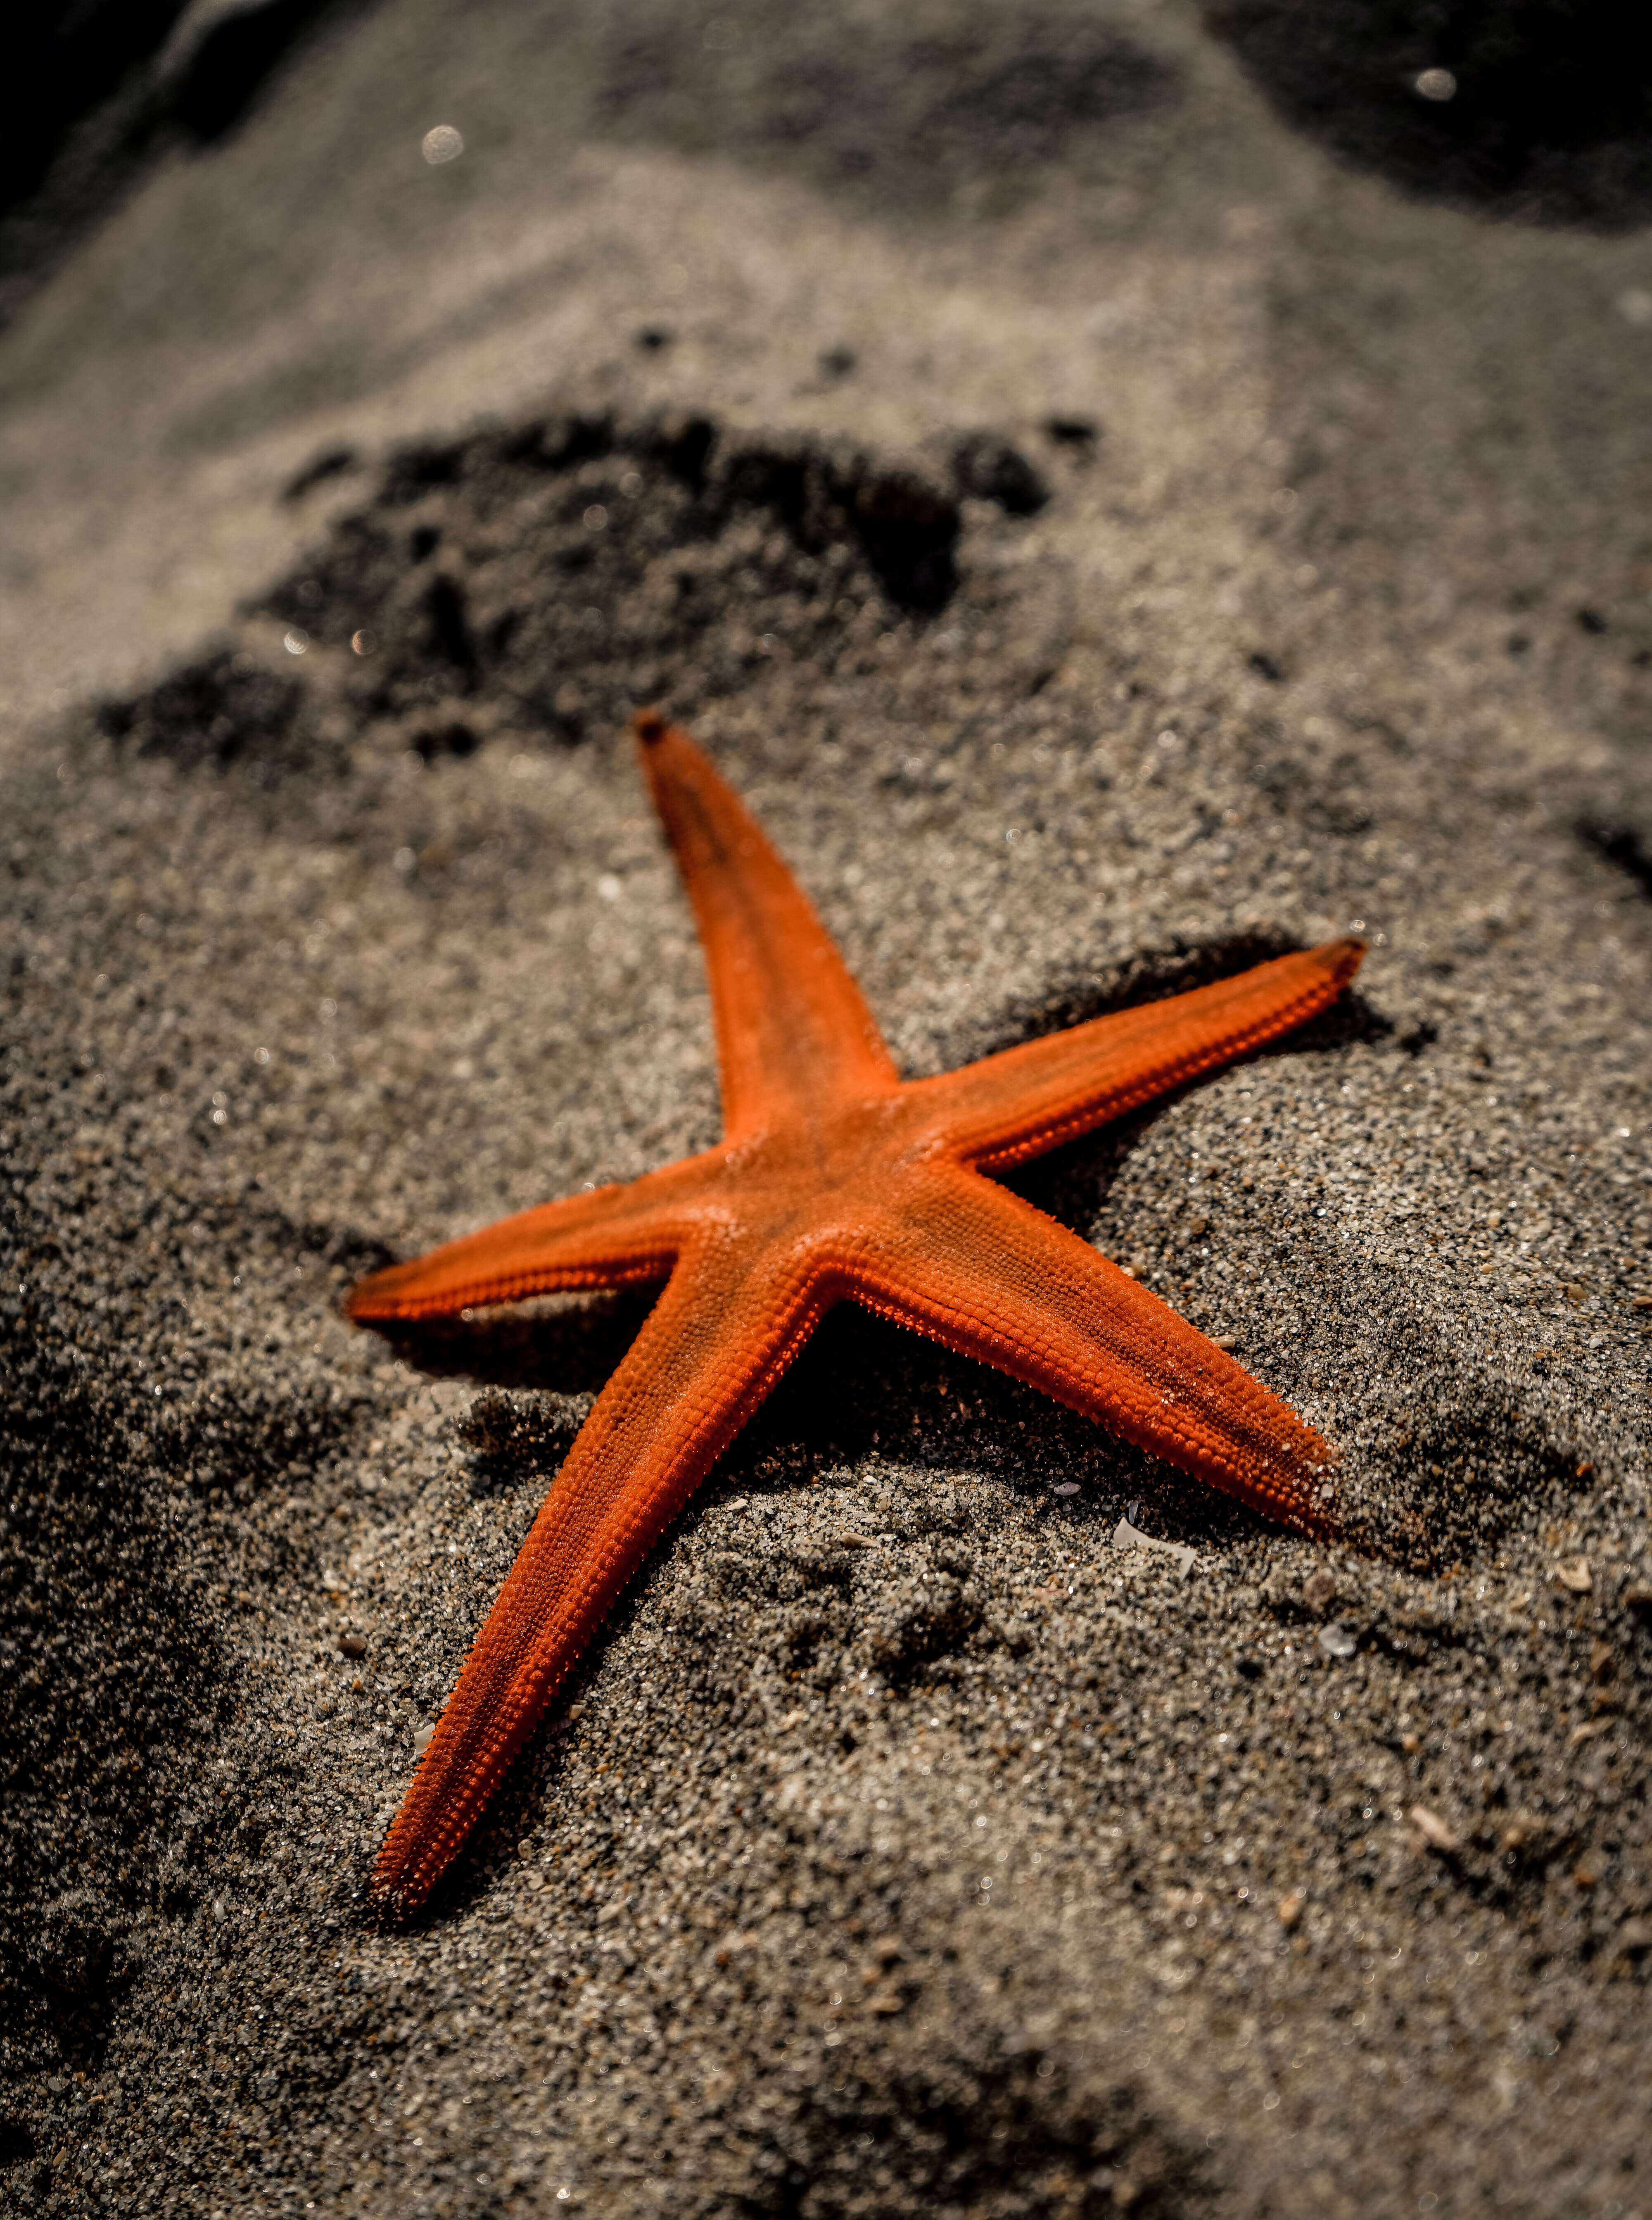 close-up photo of orange starfish on grey sand